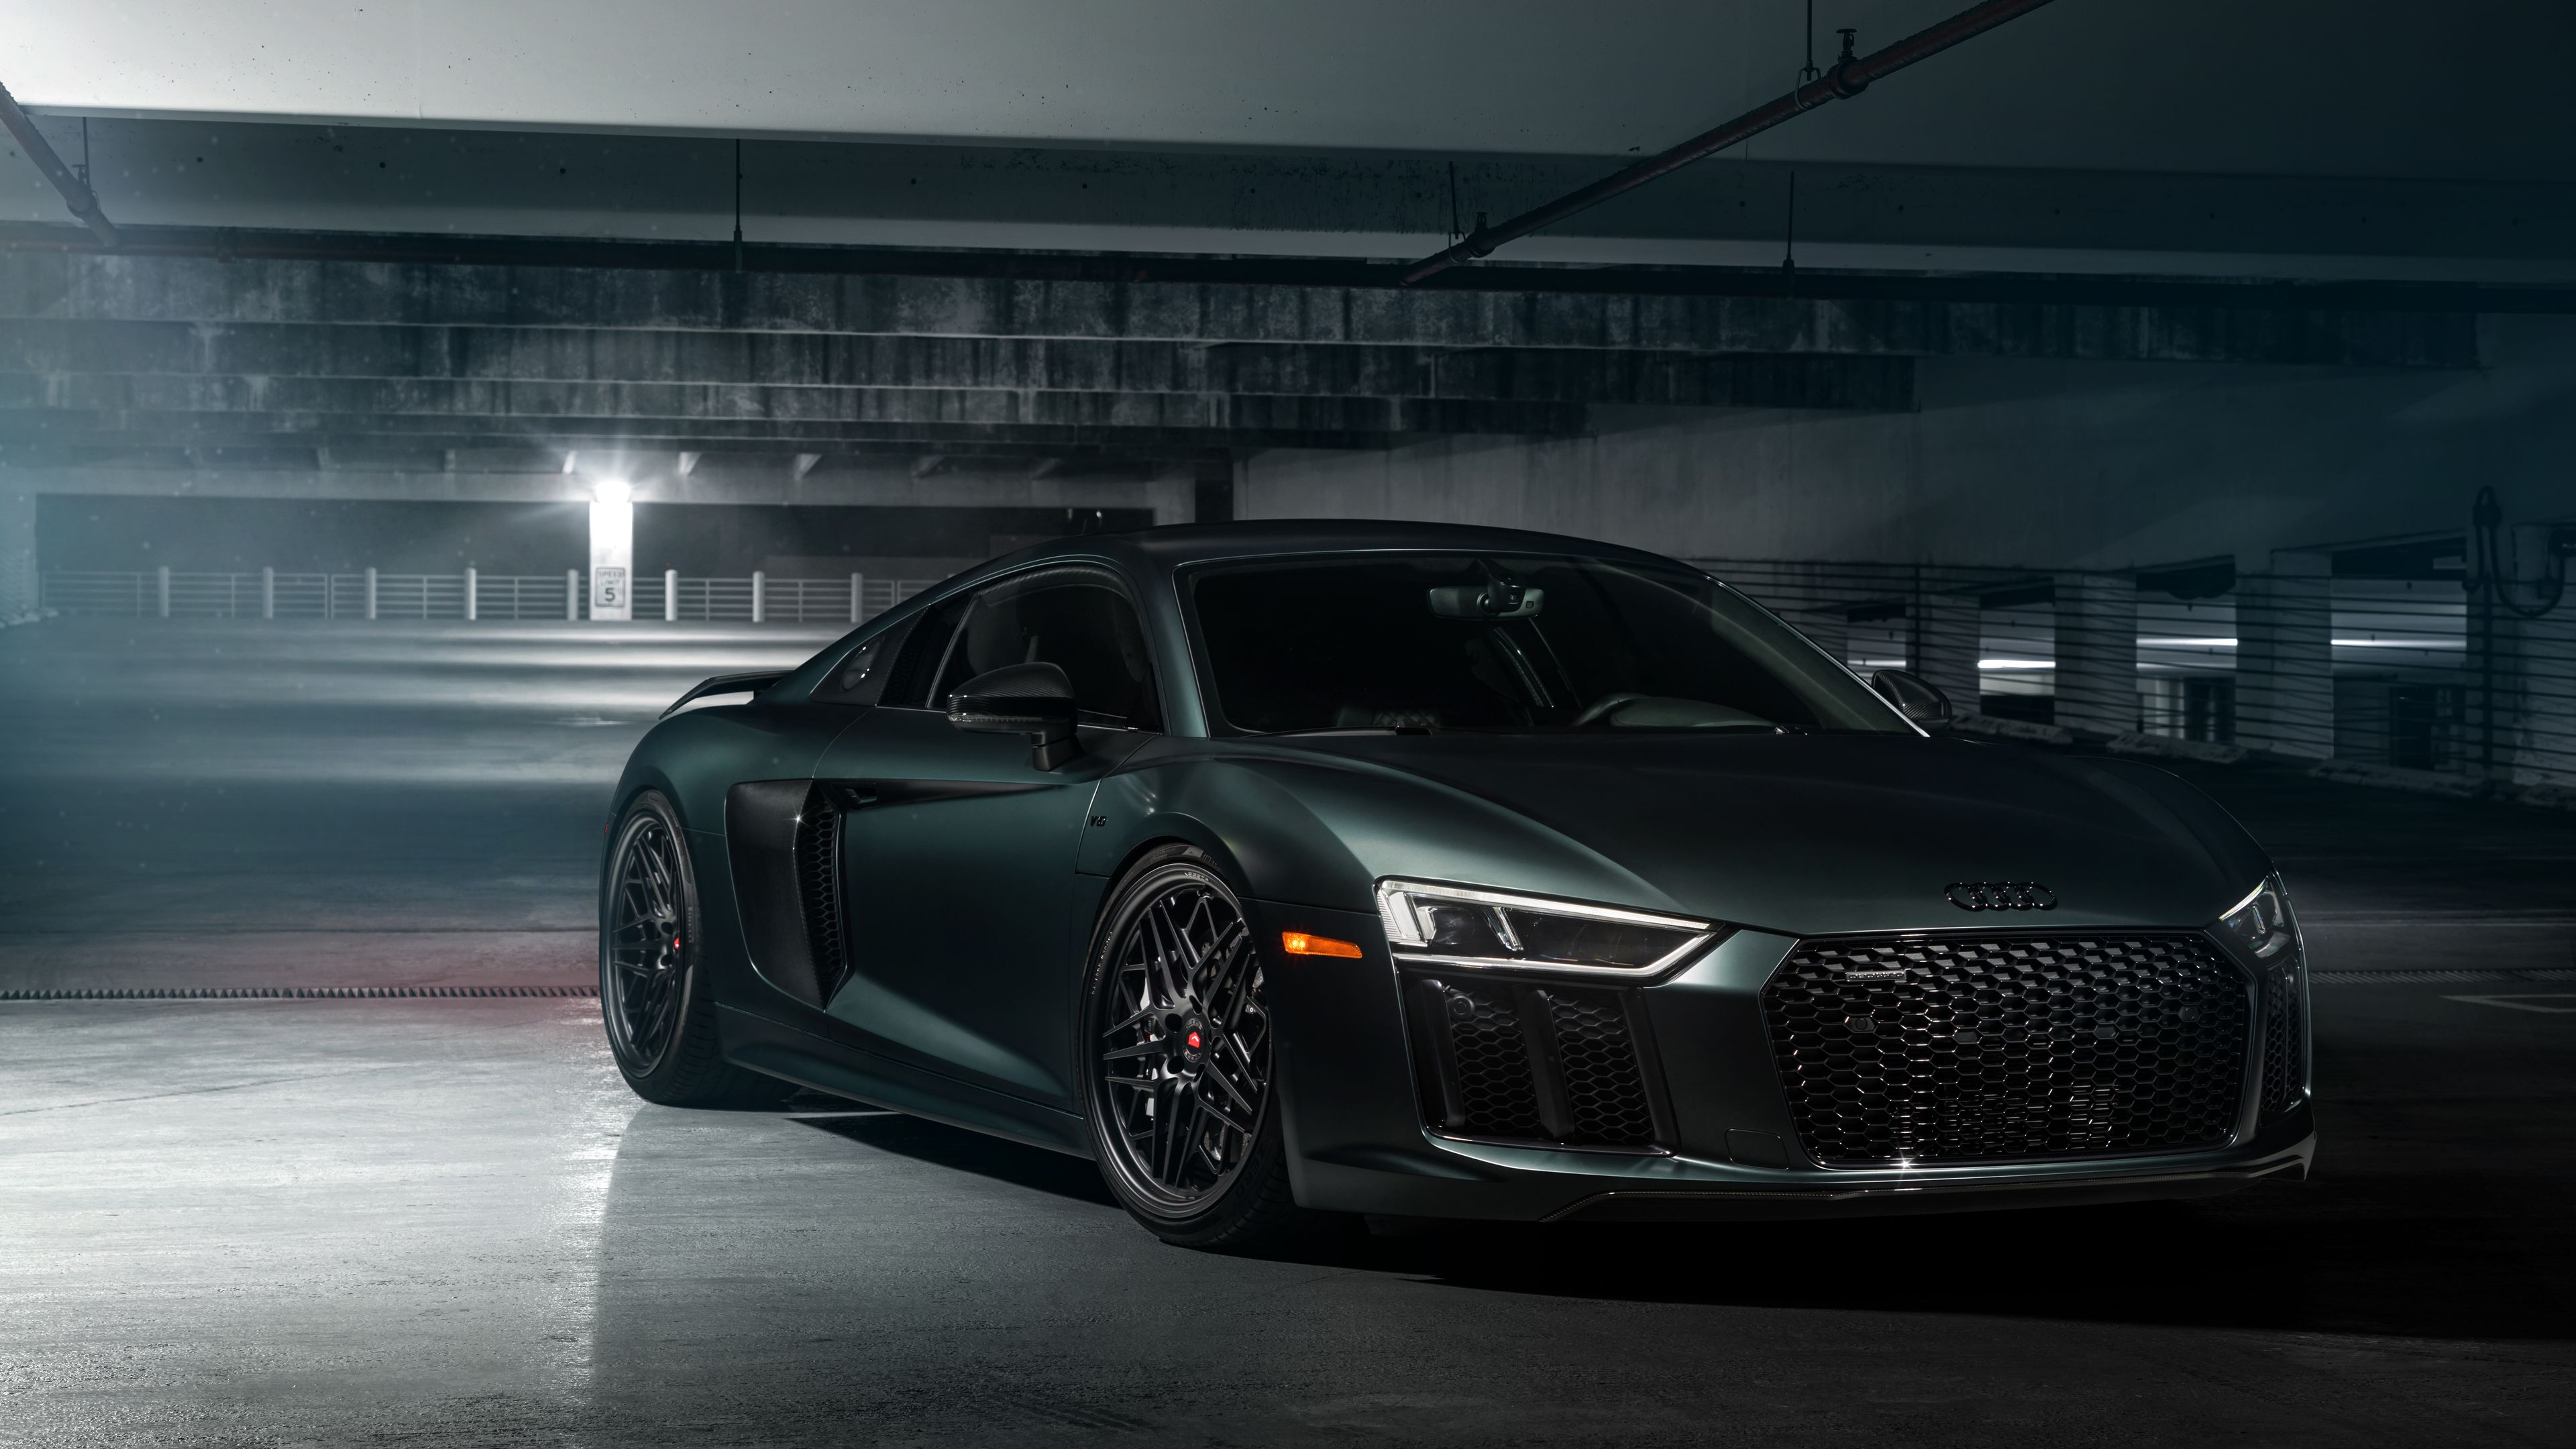 2018 Audi R8 V10 Front Hd Wallpapers Cars Wallpapers Audi Wallpapers Audi R8 Wallpapers 8k Wallpapers 5k Wallpape Audi R8 Wallpaper Car Wallpapers Audi R8